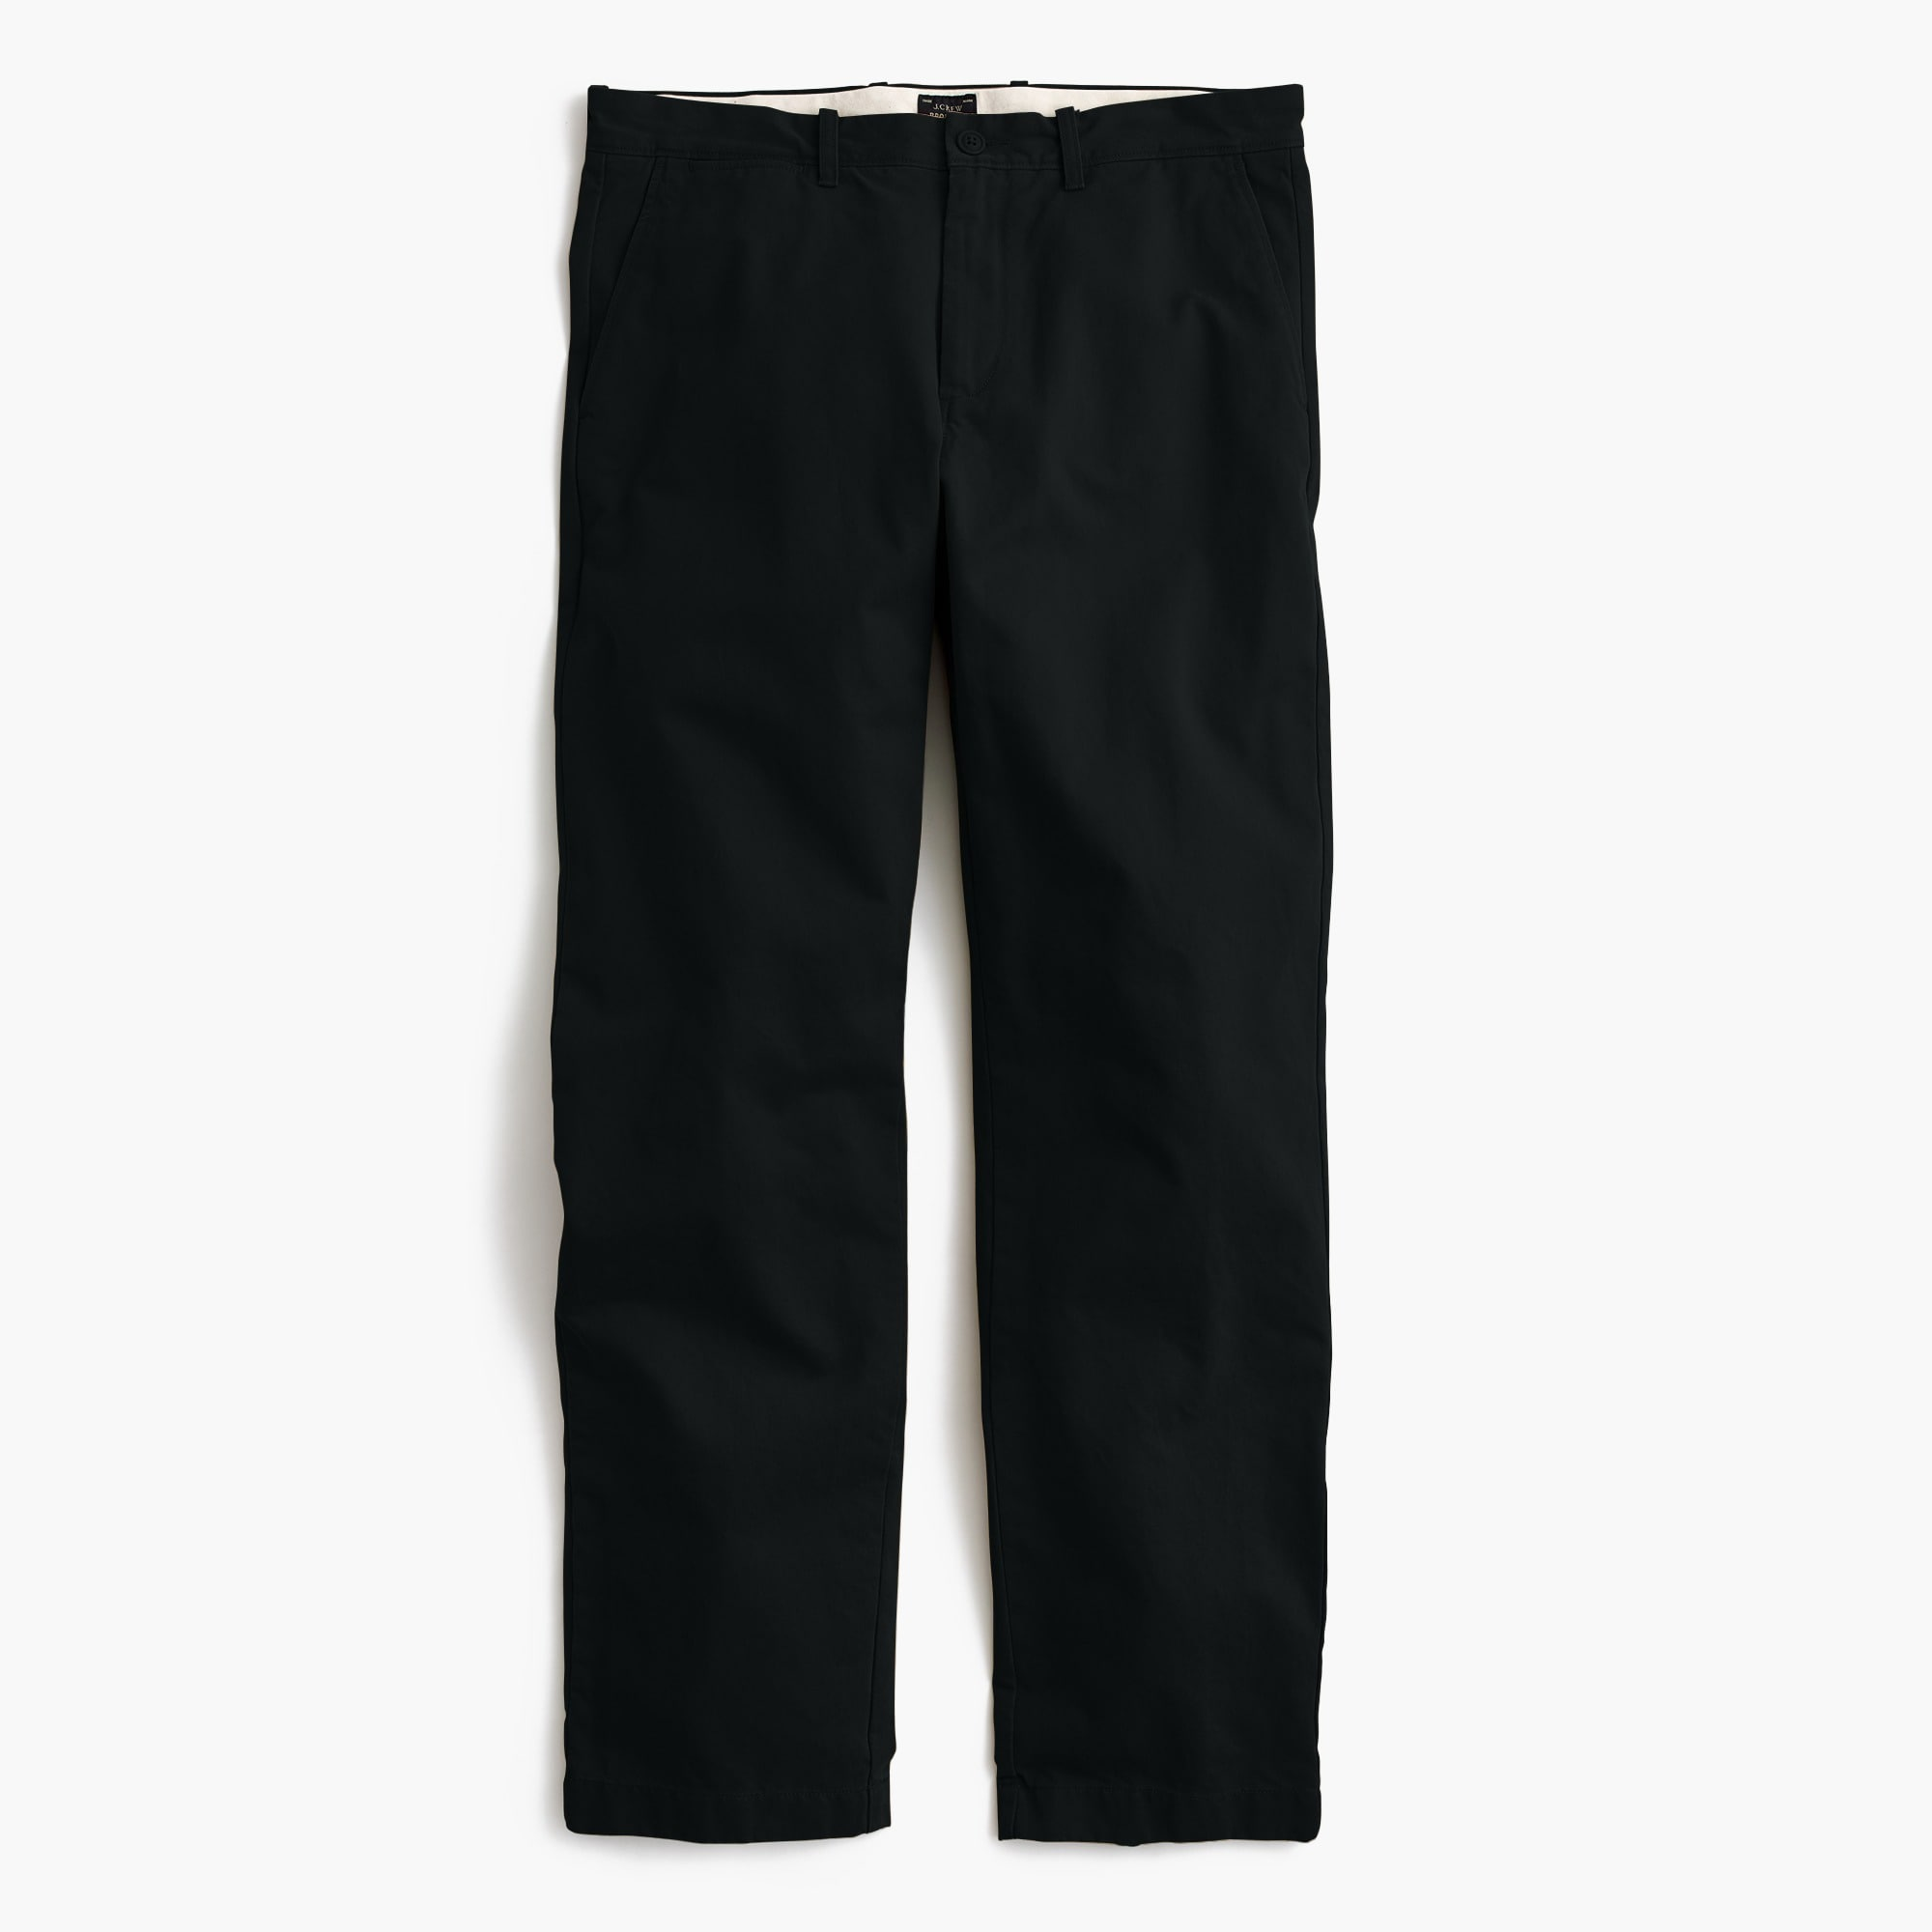 1450 Relaxed-fit Broken-in chino pant